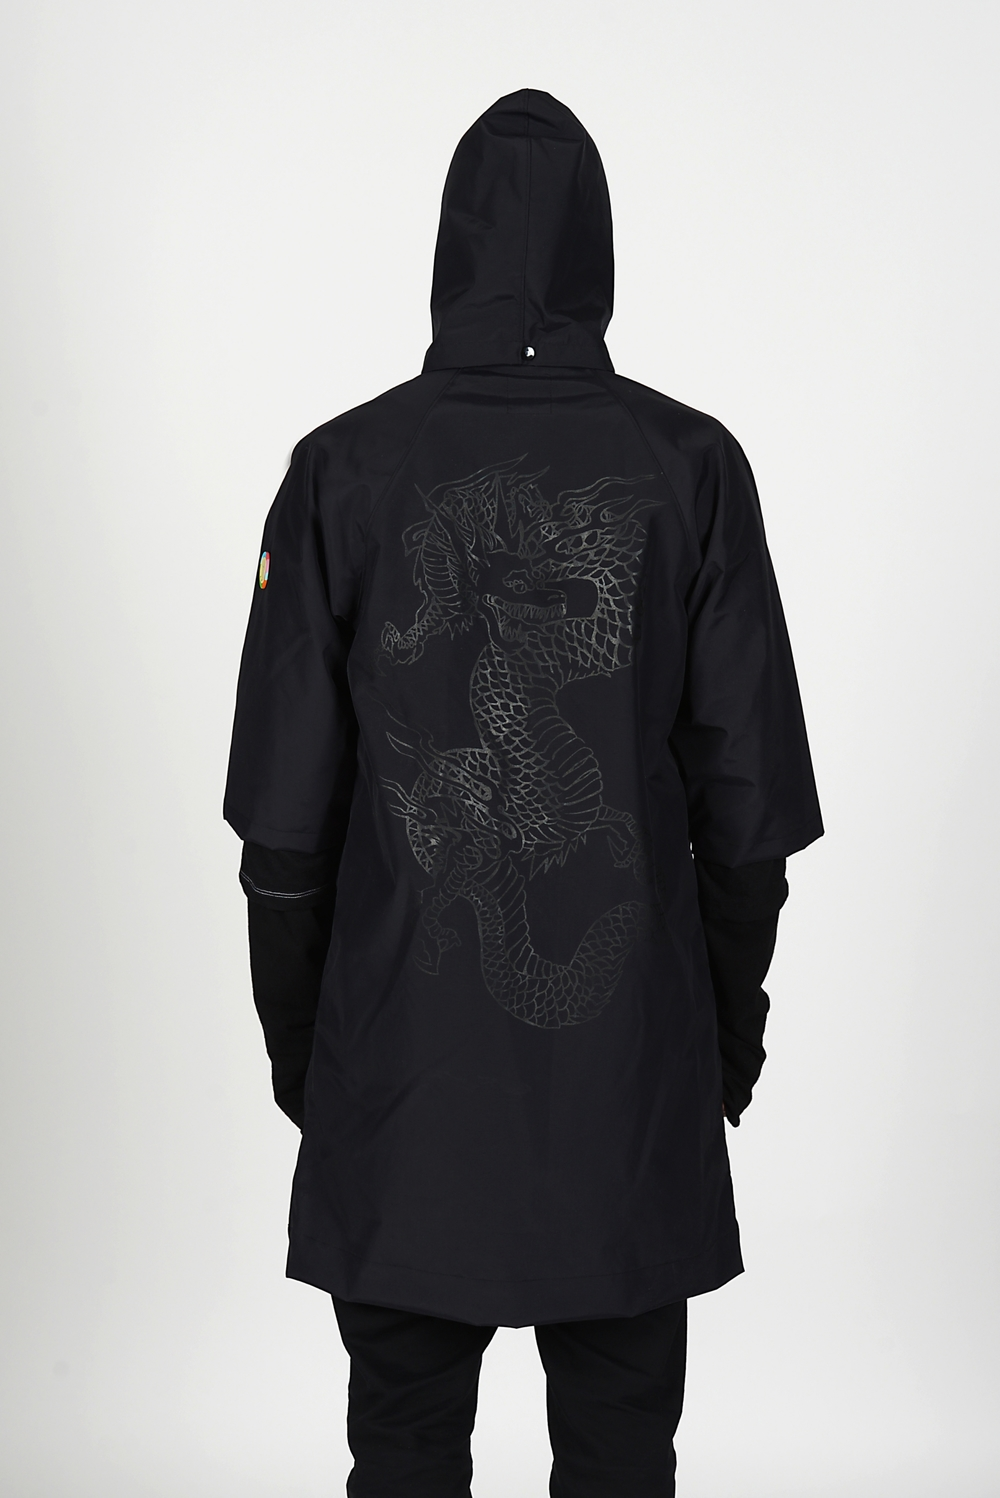 04 Heightened Sense Black Dragon Coat.jpg